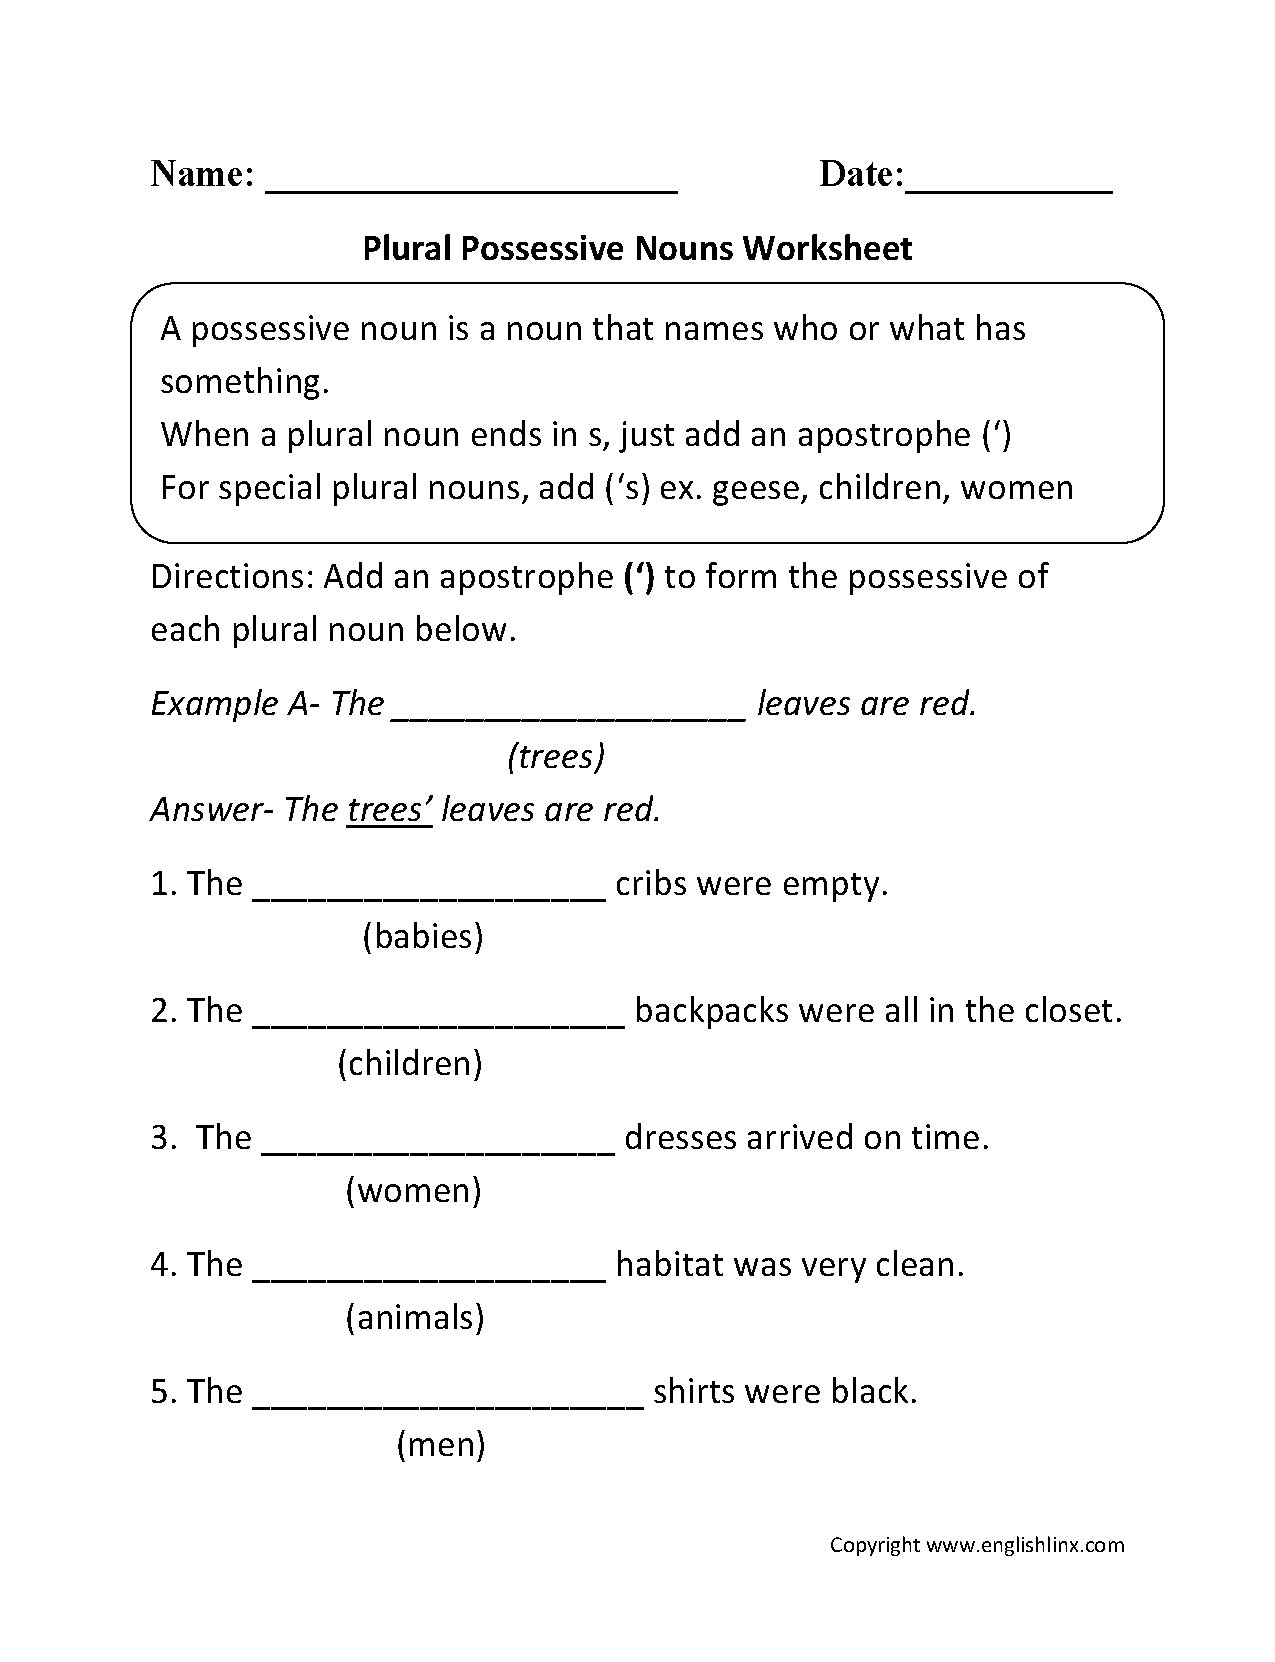 Aldiablosus  Sweet Nouns Worksheets  Possessive Nouns Worksheets With Heavenly Possessive Nouns Worksheets With Cute Calculator Maths Worksheets Also Fun Perimeter Worksheets In Addition Igcse Biology Worksheets And Year  Percentages Worksheet As Well As Paragraph Editing Worksheet Additionally Multiply And Divide Exponents Worksheet From Englishlinxcom With Aldiablosus  Heavenly Nouns Worksheets  Possessive Nouns Worksheets With Cute Possessive Nouns Worksheets And Sweet Calculator Maths Worksheets Also Fun Perimeter Worksheets In Addition Igcse Biology Worksheets From Englishlinxcom